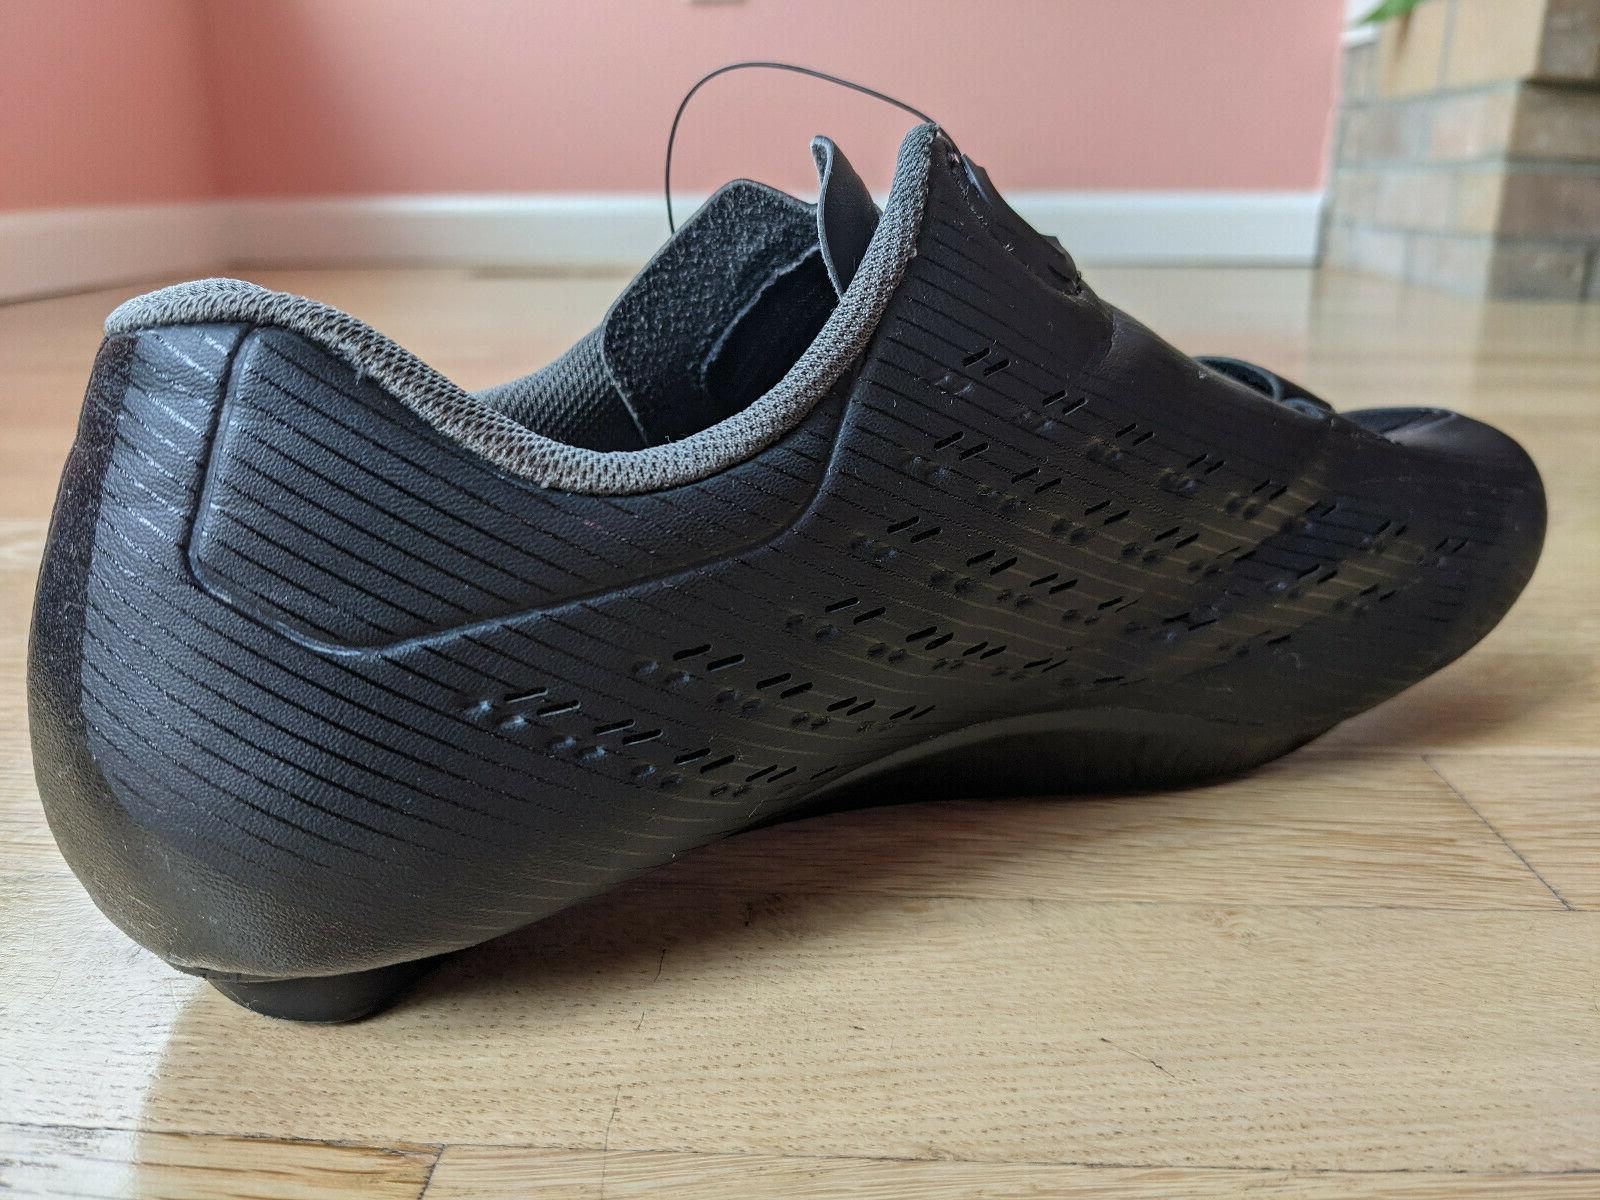 SHIMANO Men's Black Boa Cycling Shoes Size 44